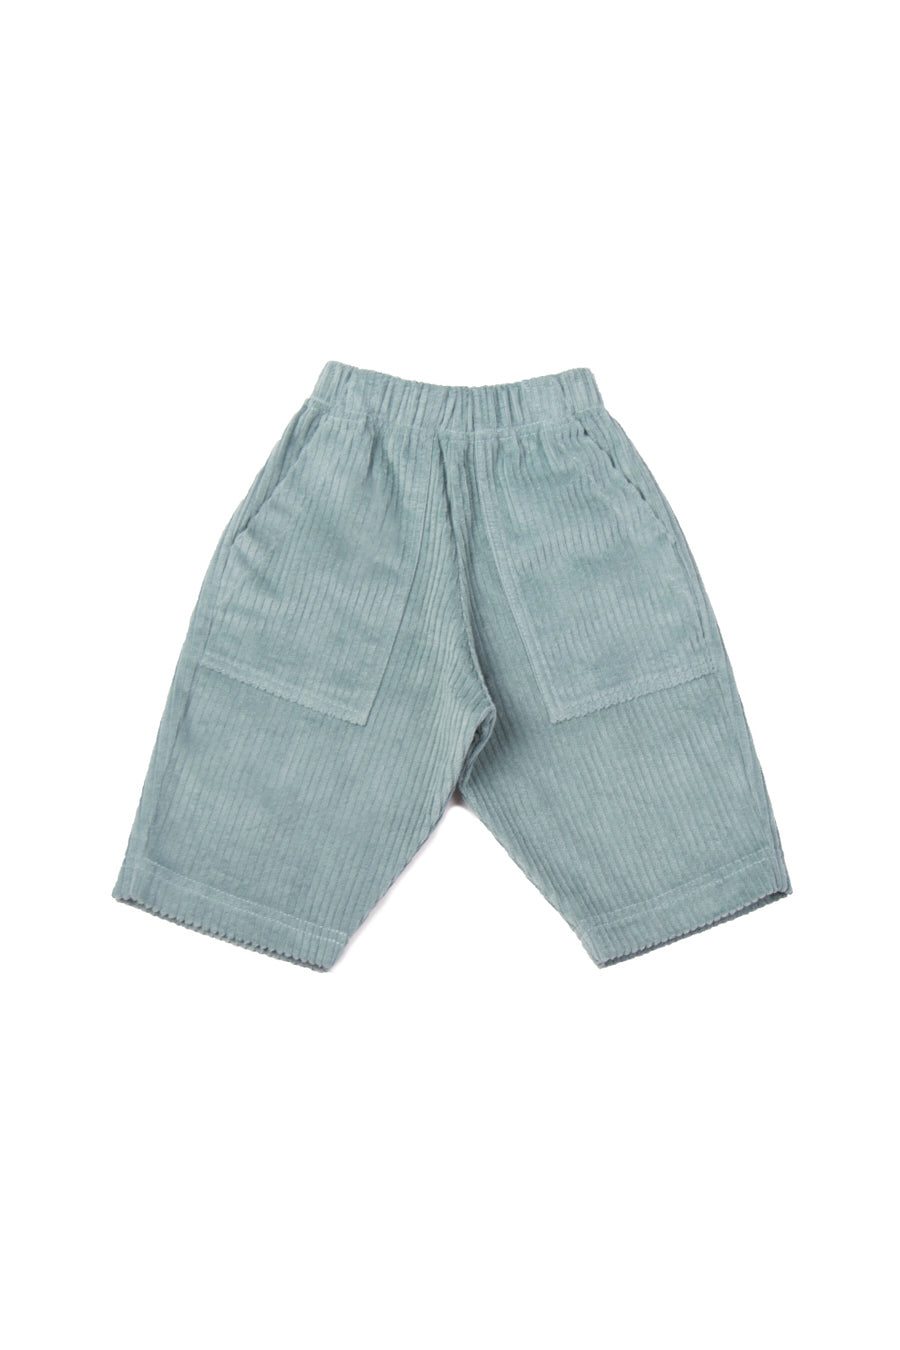 Tailor RP Baby Pants